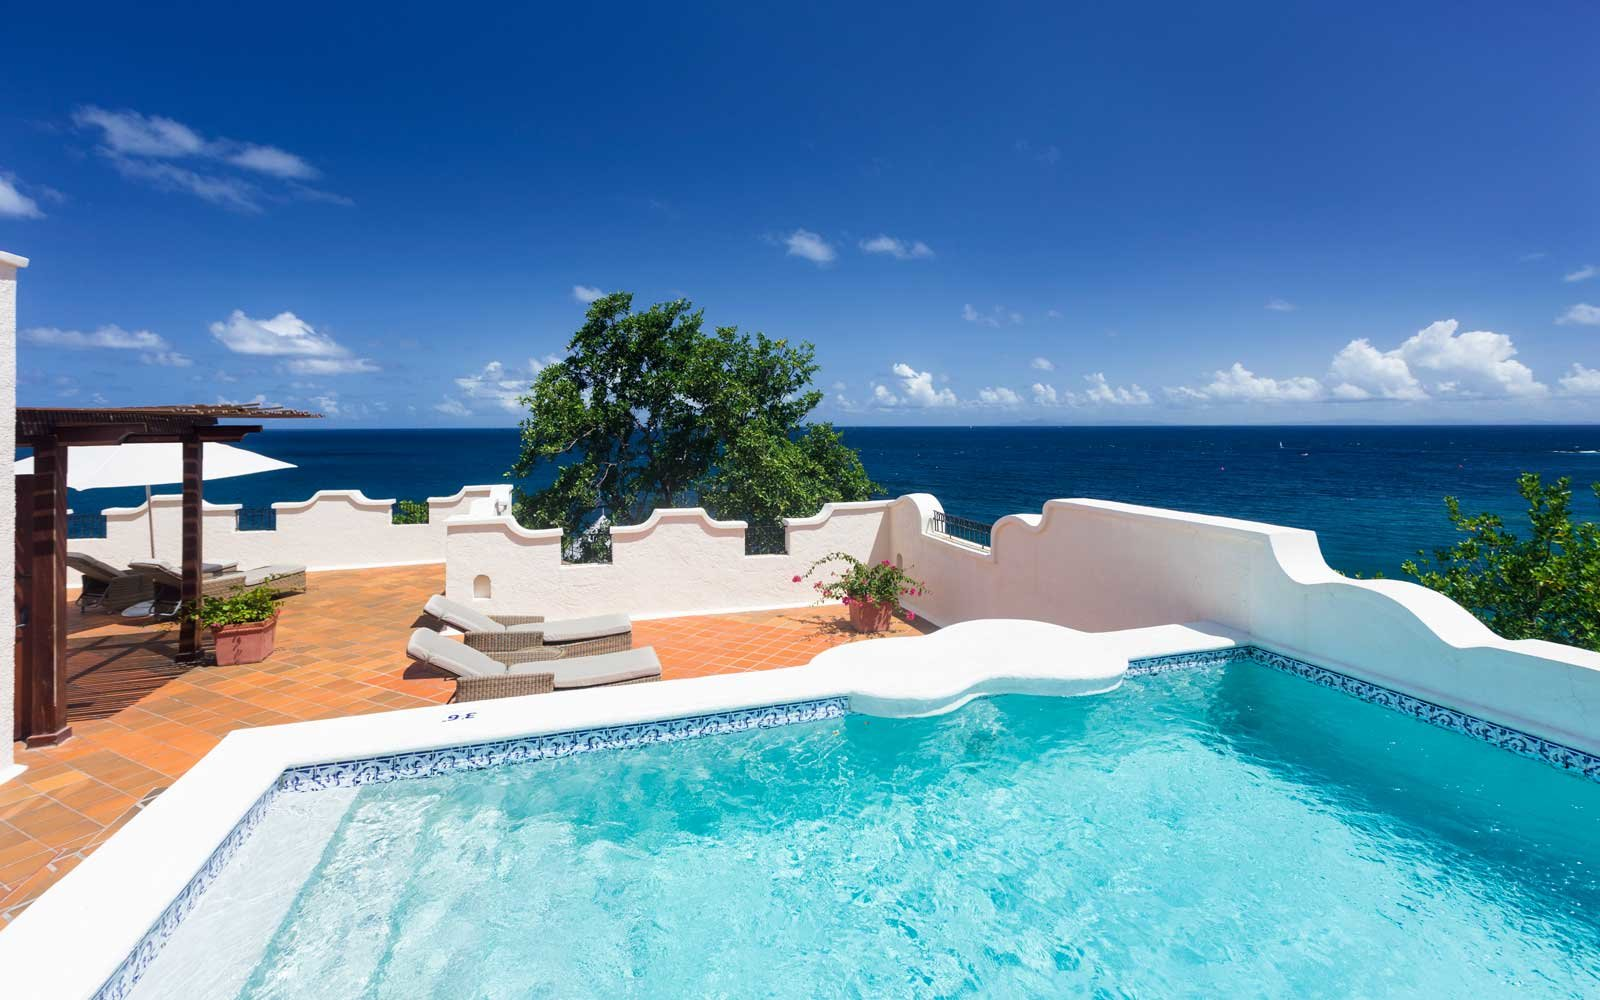 Jacuzzi Pool Top Caps The 2018 World 39s Best Resort Hotels In The Caribbean